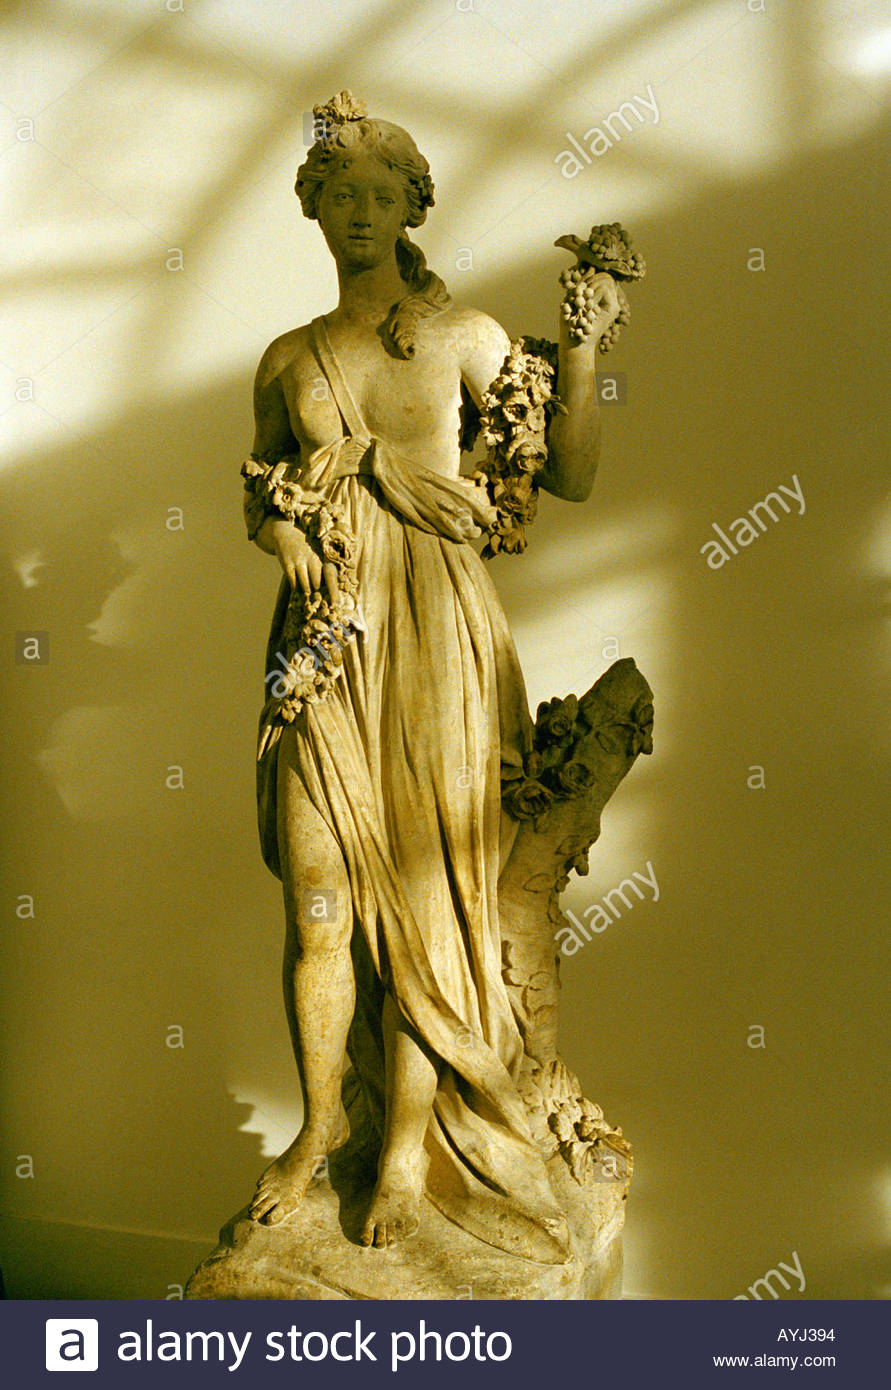 Statue of Flora Roman god of flowers - Stock Image